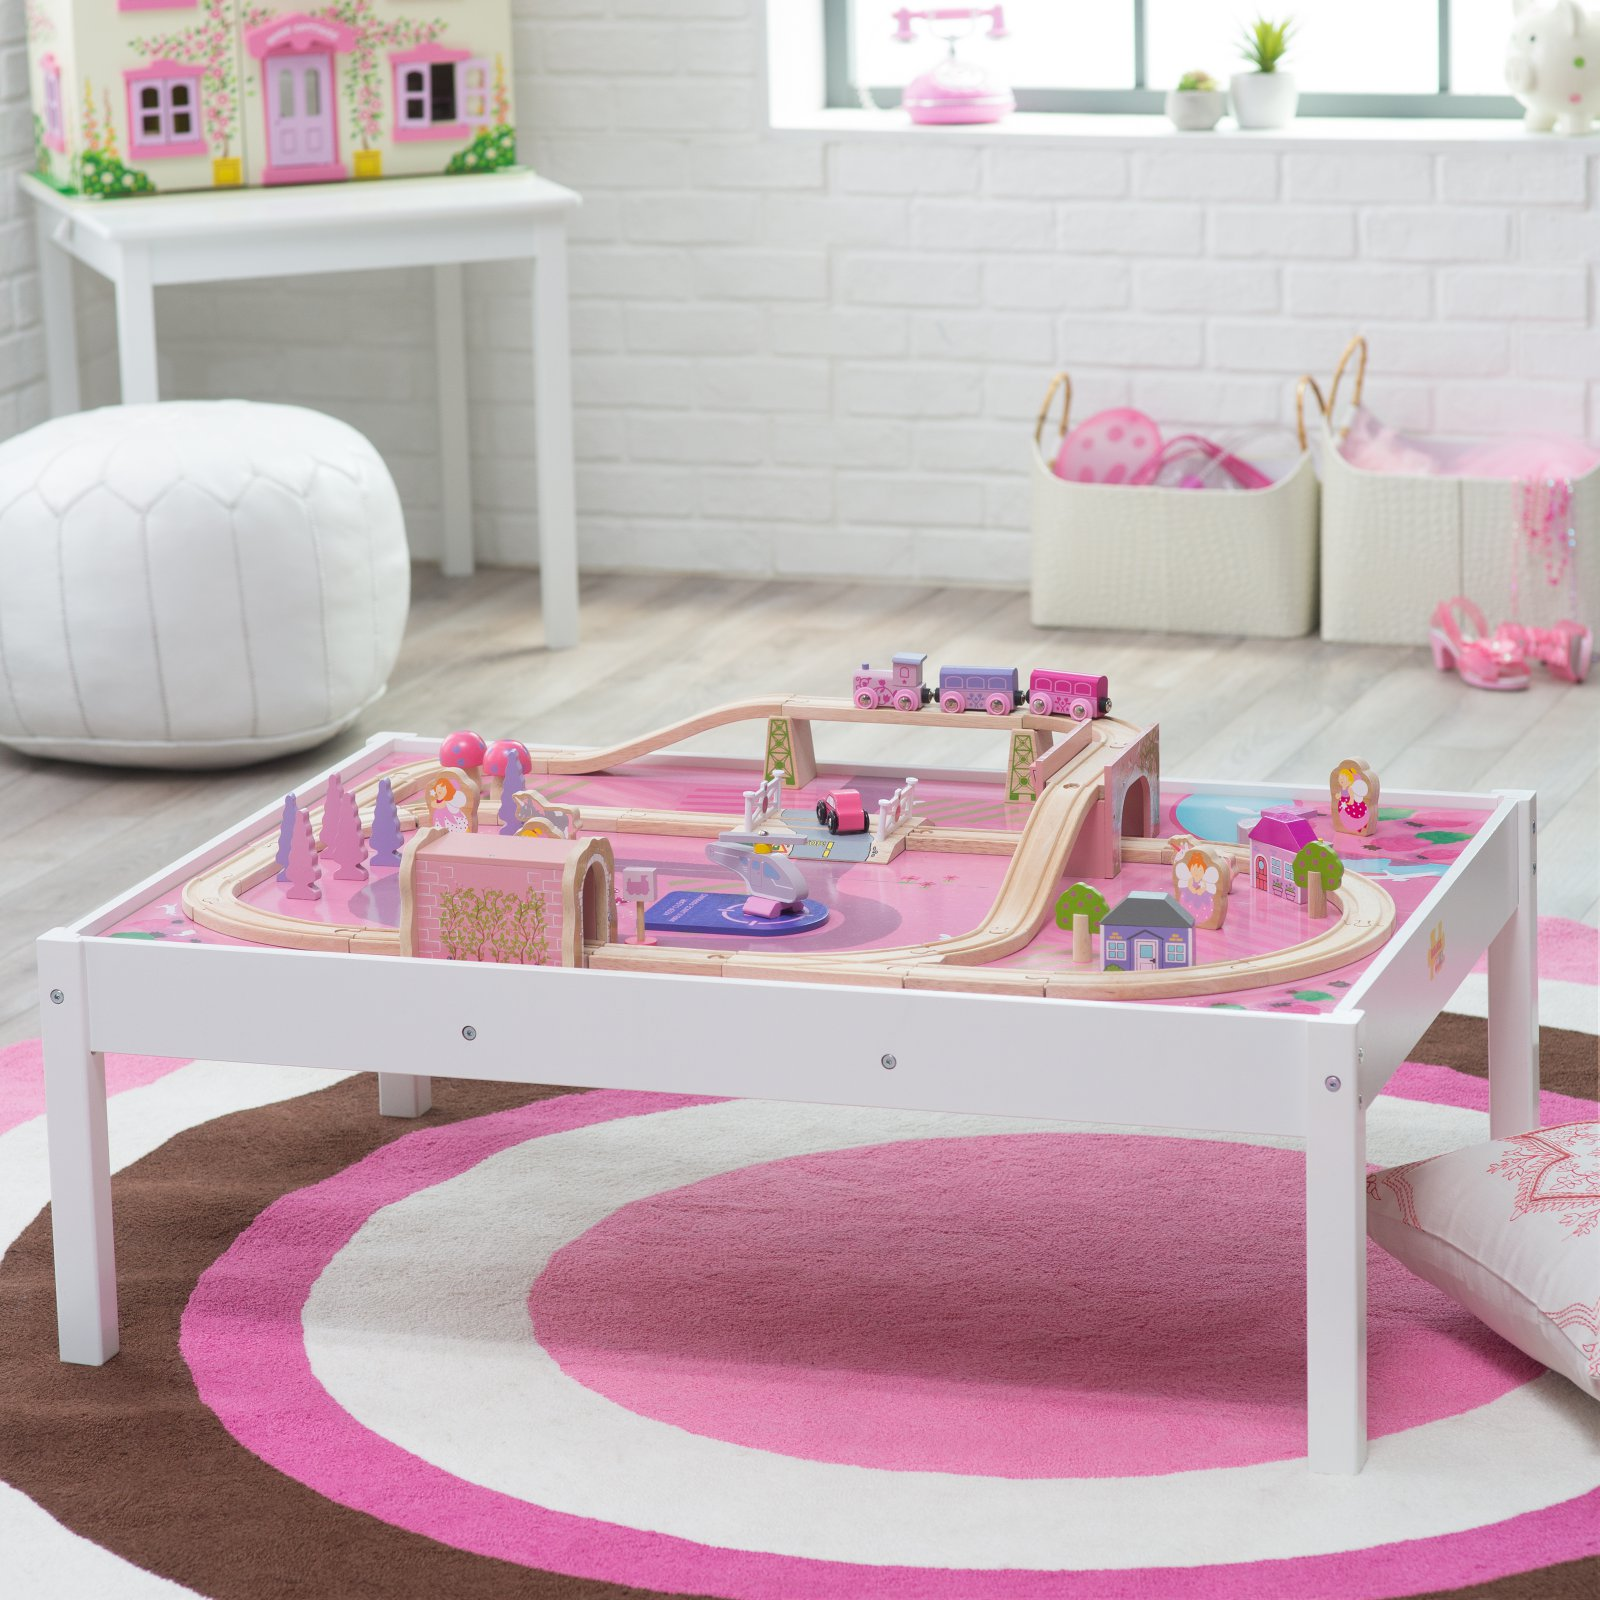 Bigjigs Wooden Magical Train Set and Table & Bigjigs Wooden Magical Train Set and Table - Walmart.com